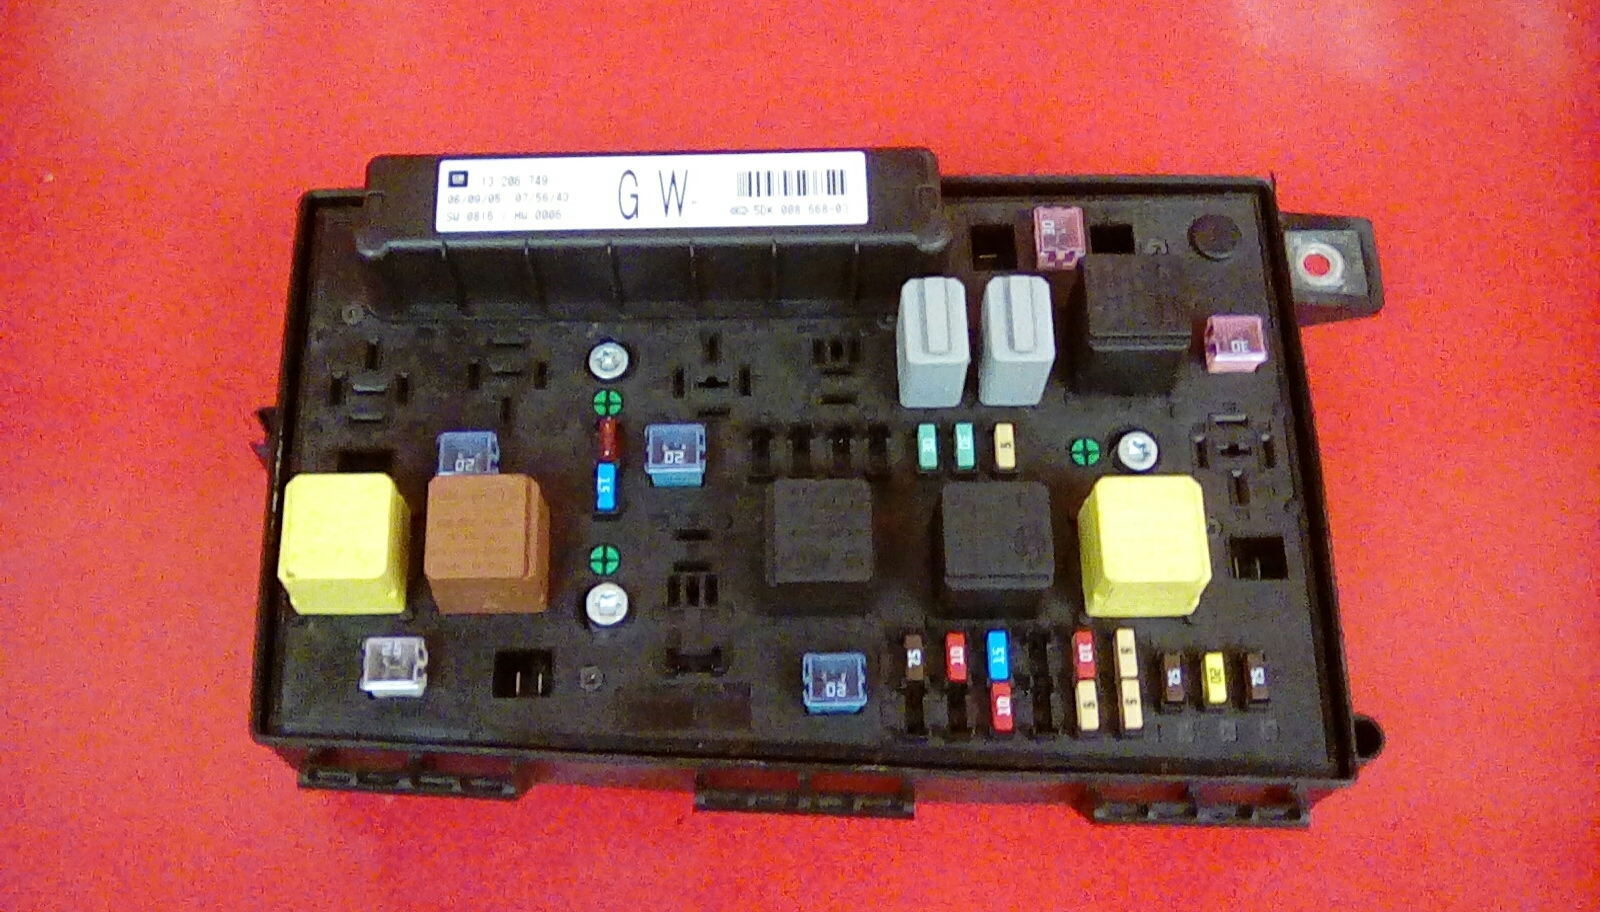 VAUXHALL ASTRA H MK5 FRONT BCM ELECTRIC CONTROL GW UEC FUSE BOX 2004-2010